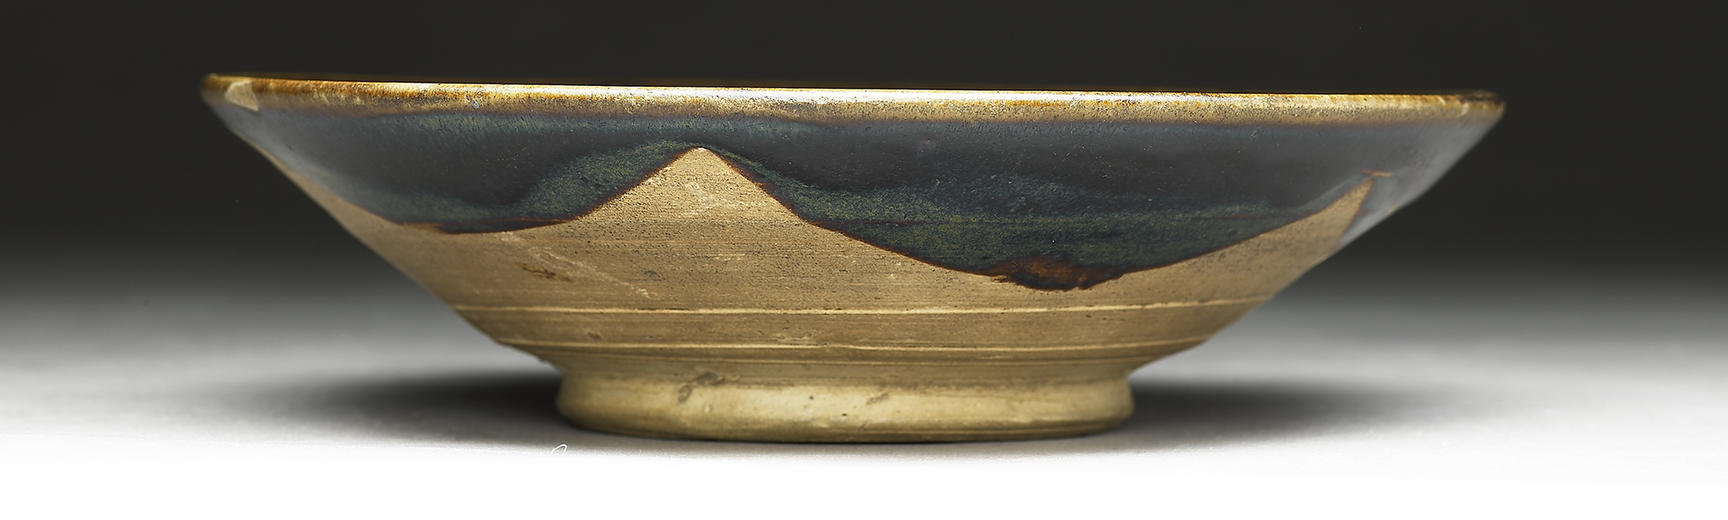 black ware bowl with stars ea1956 1427 banner